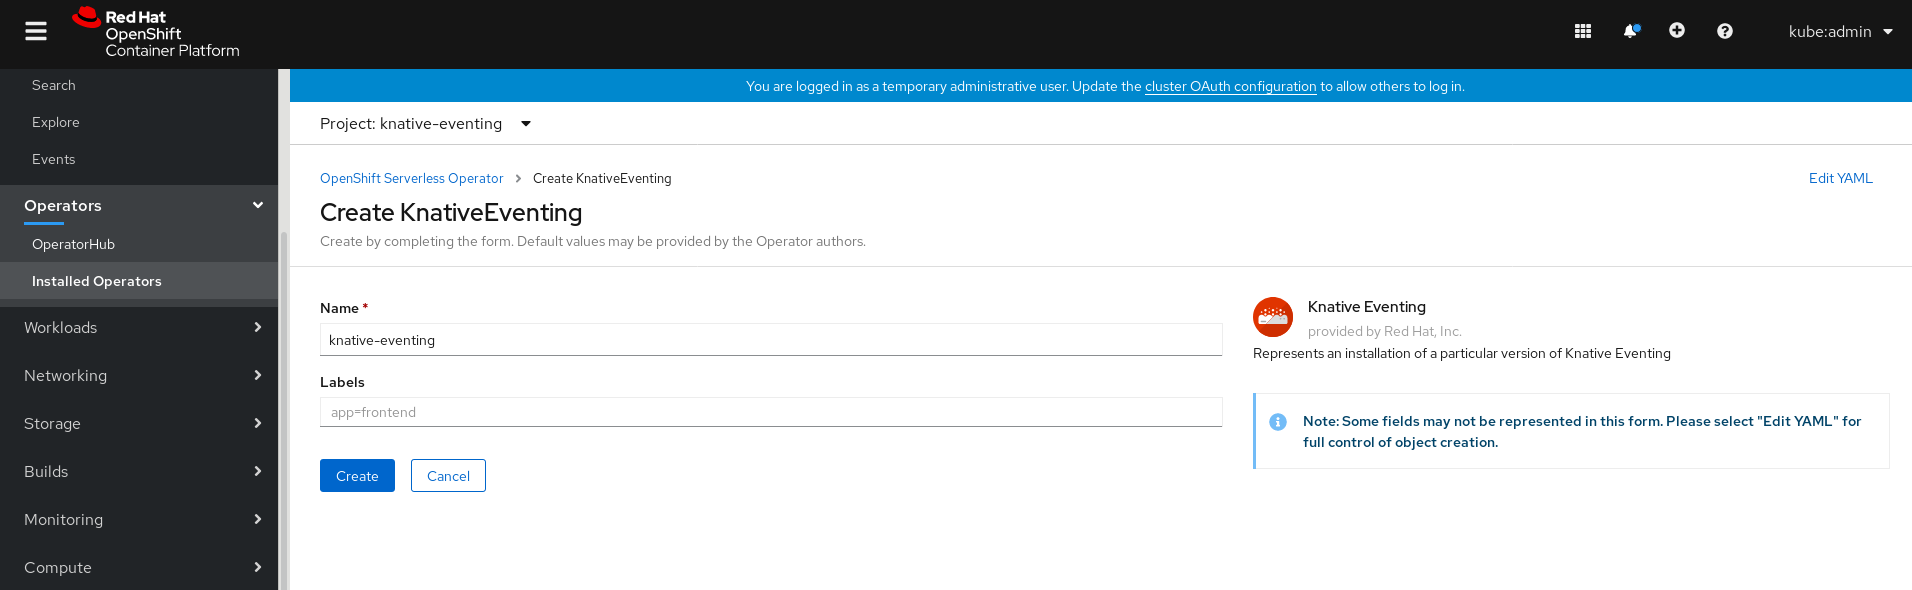 Create Knative Eventing using the form